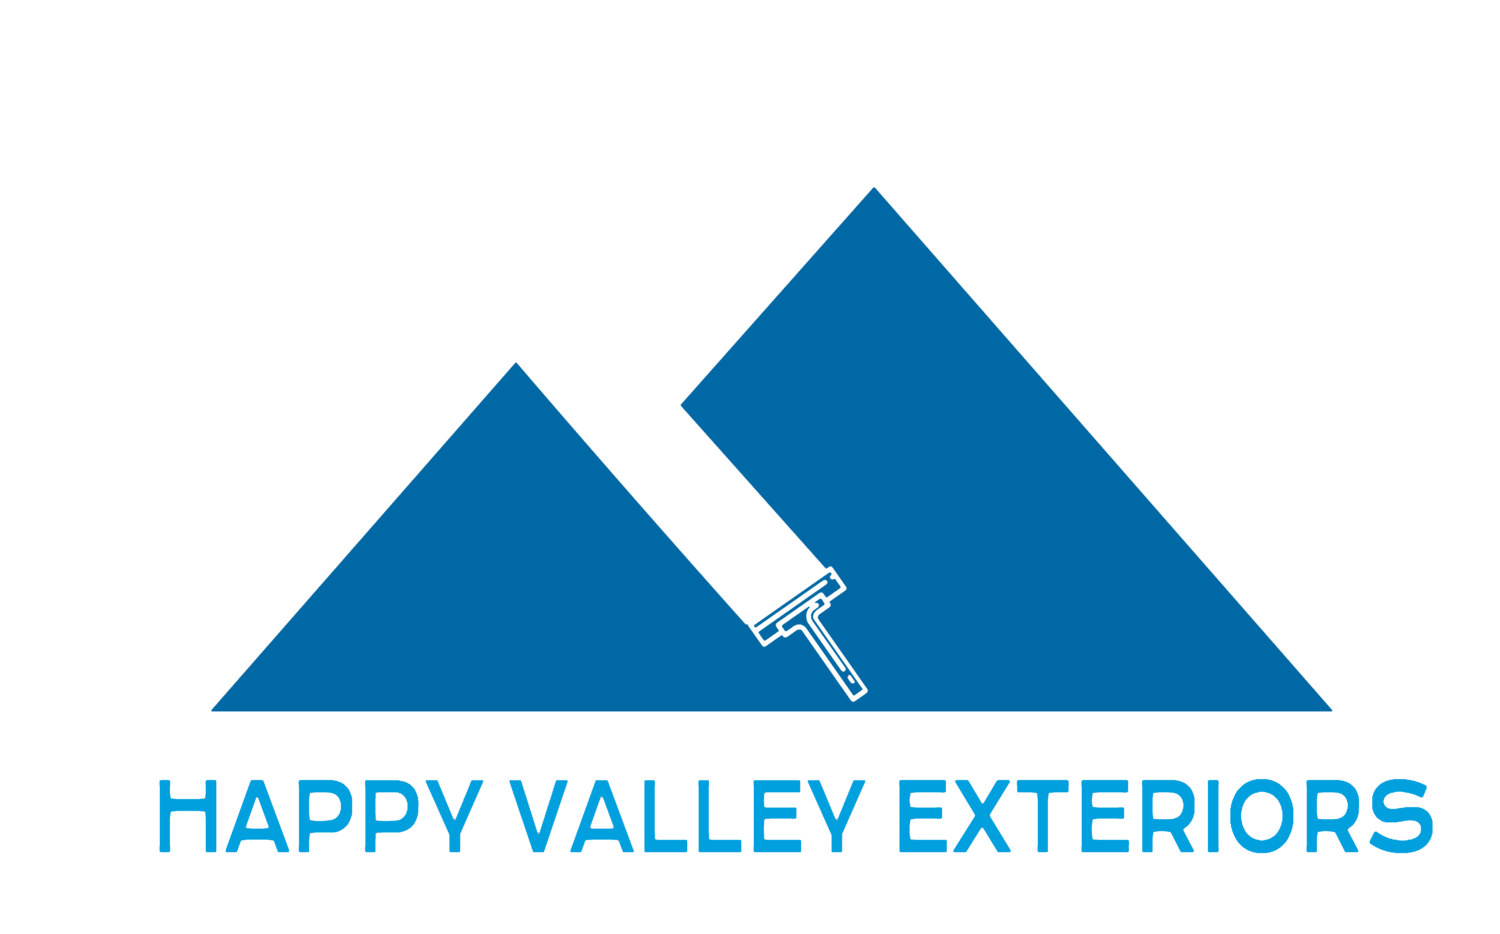 Happy Valley Exteriors